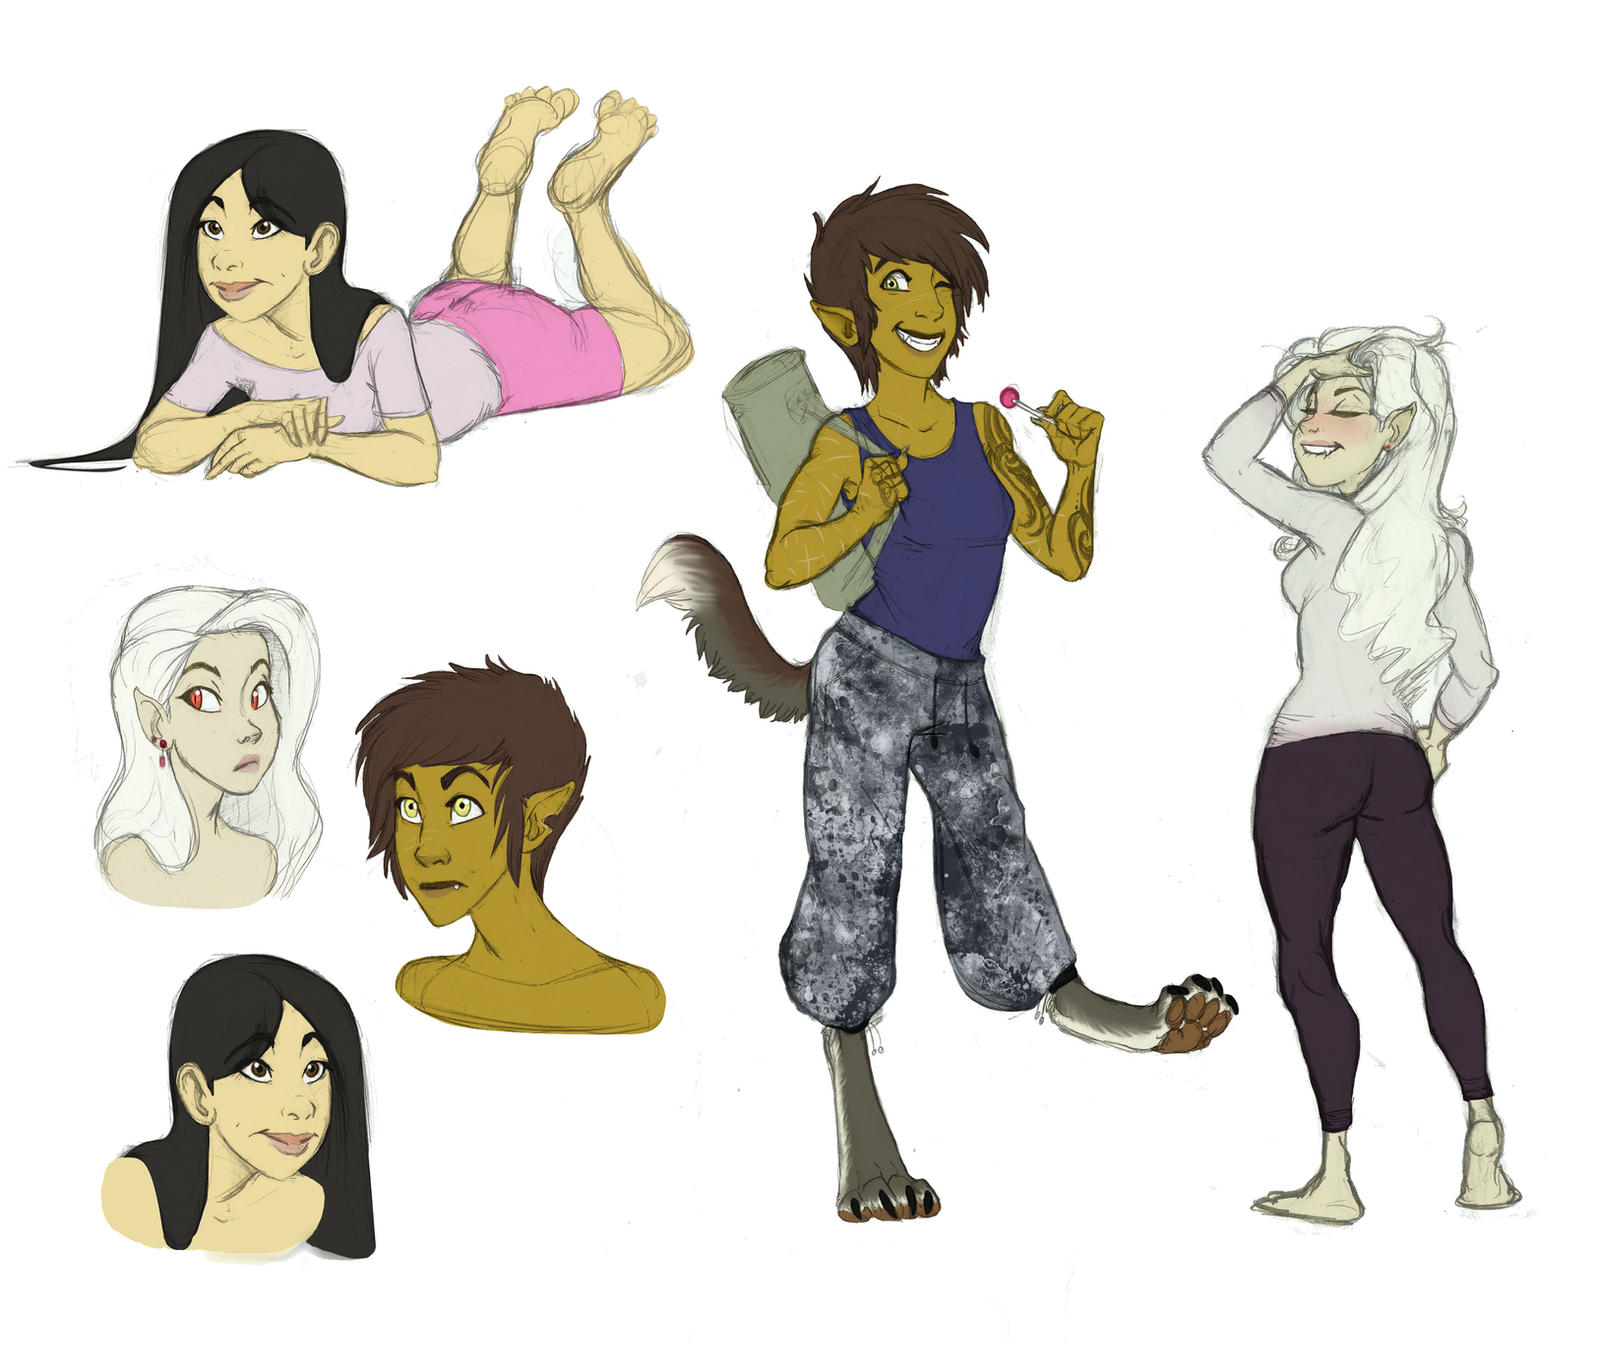 Shapeshifter Character Design : Original characters sketchdump by earthsong on deviantart